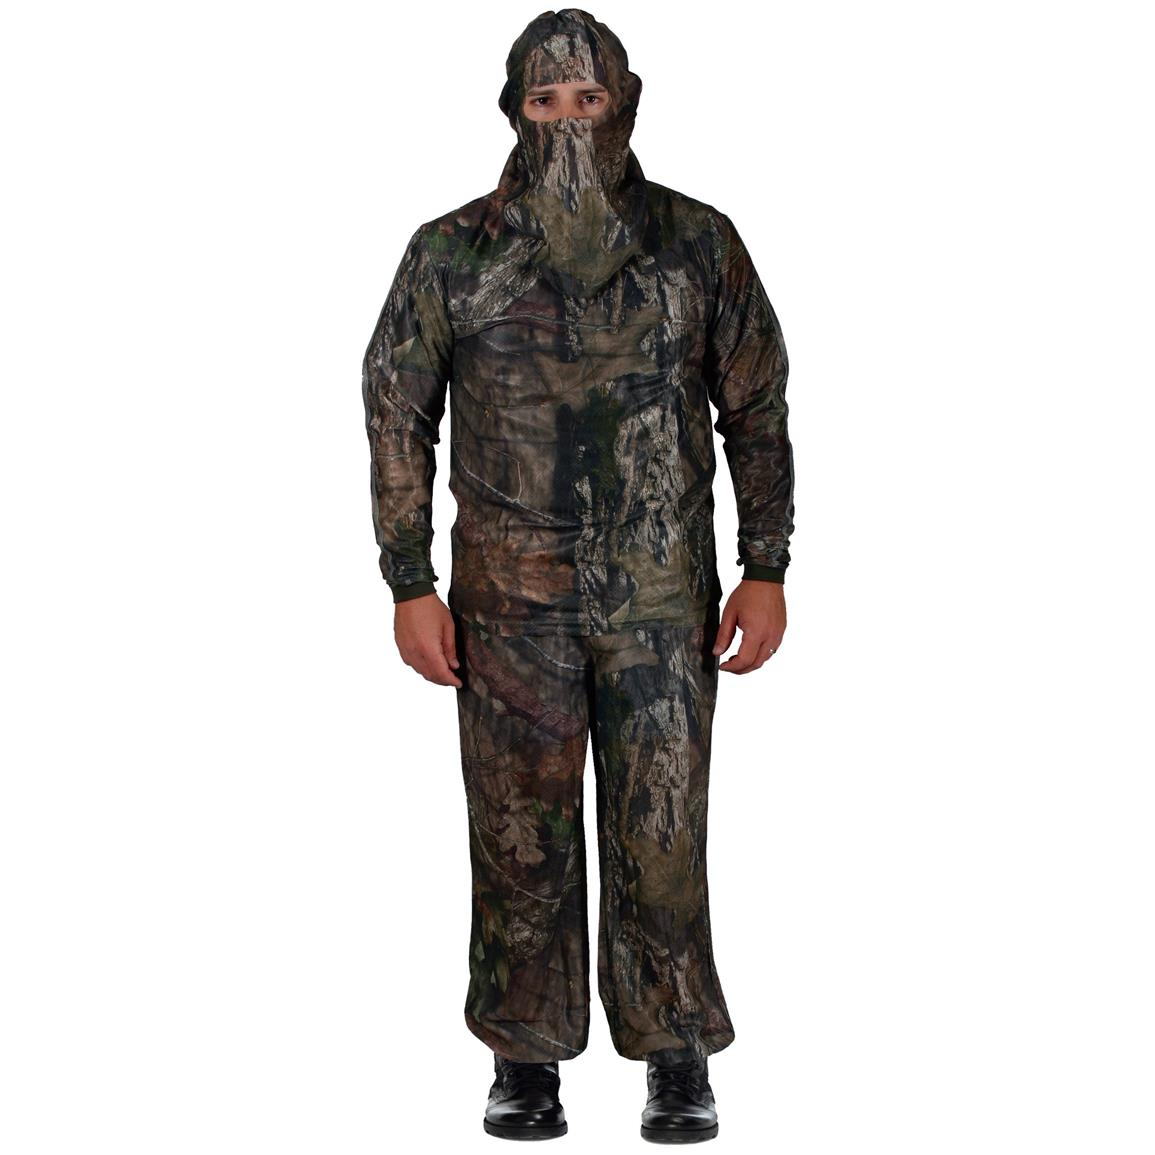 HECS Stealthscreen 3 Piece Concealment Suit, Mossy Oak Break-Up Country